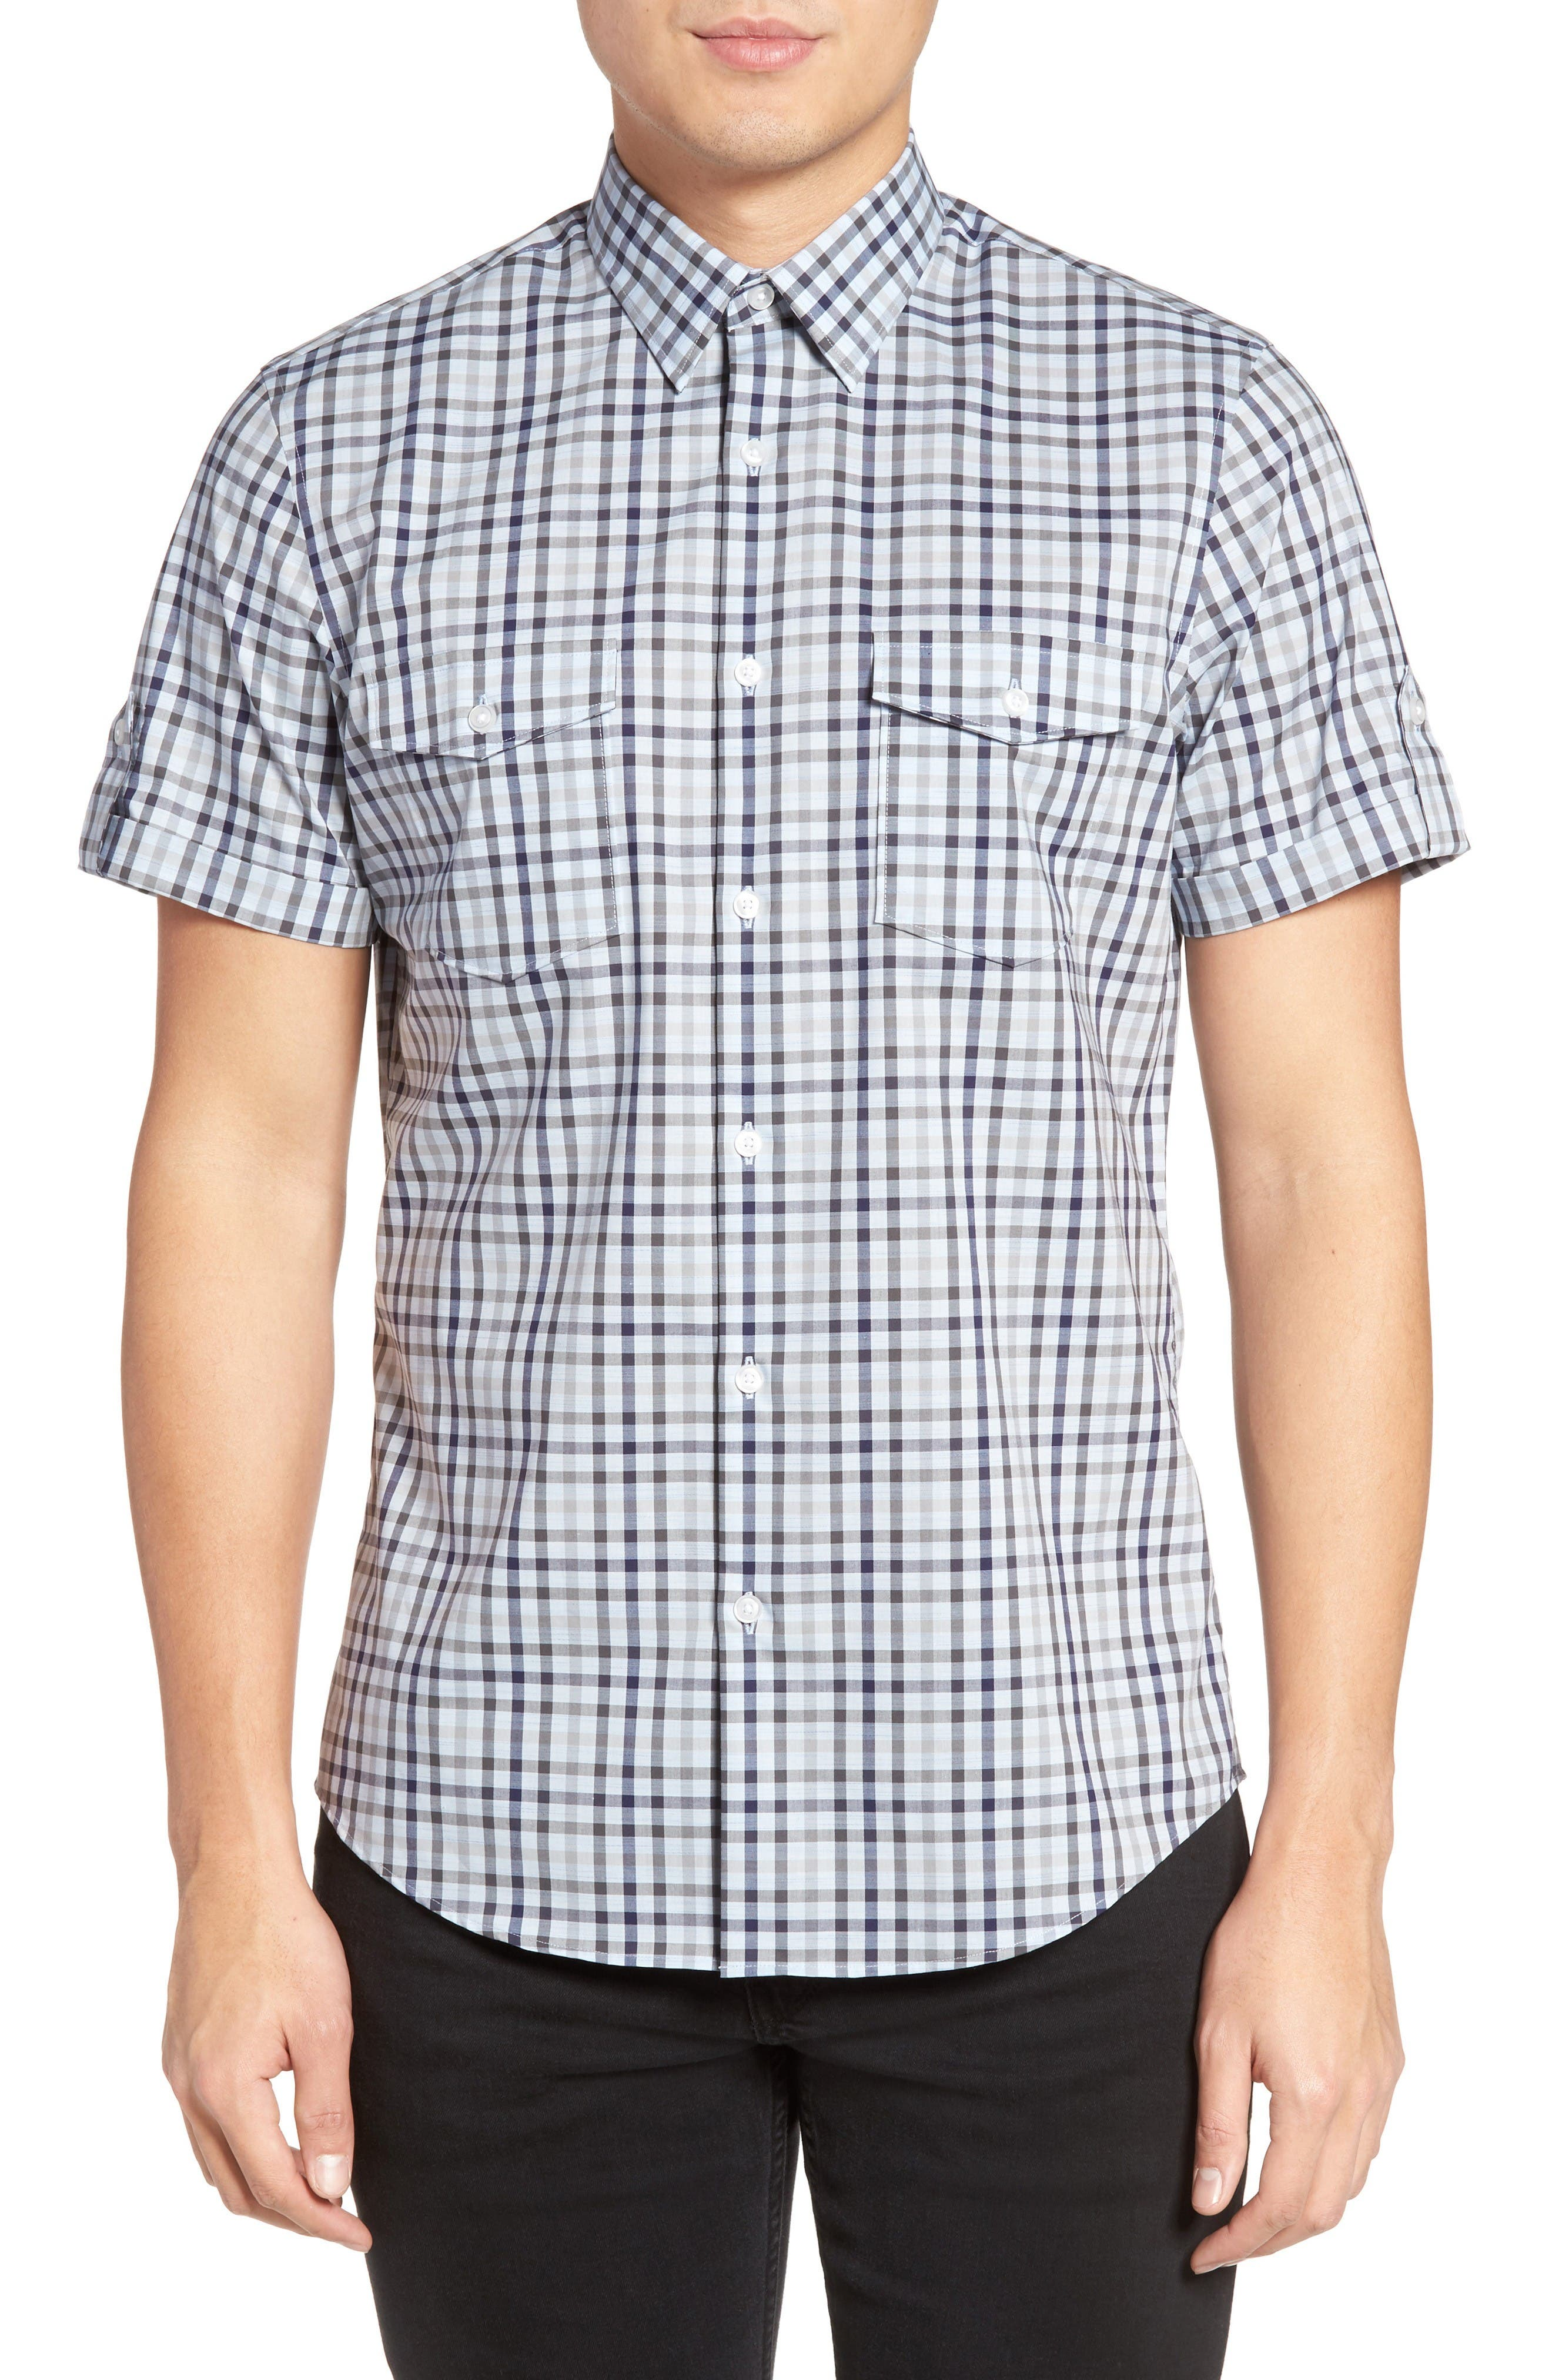 Calibrate Slim Fit Non-Iron Gingham Military Sport Shirt